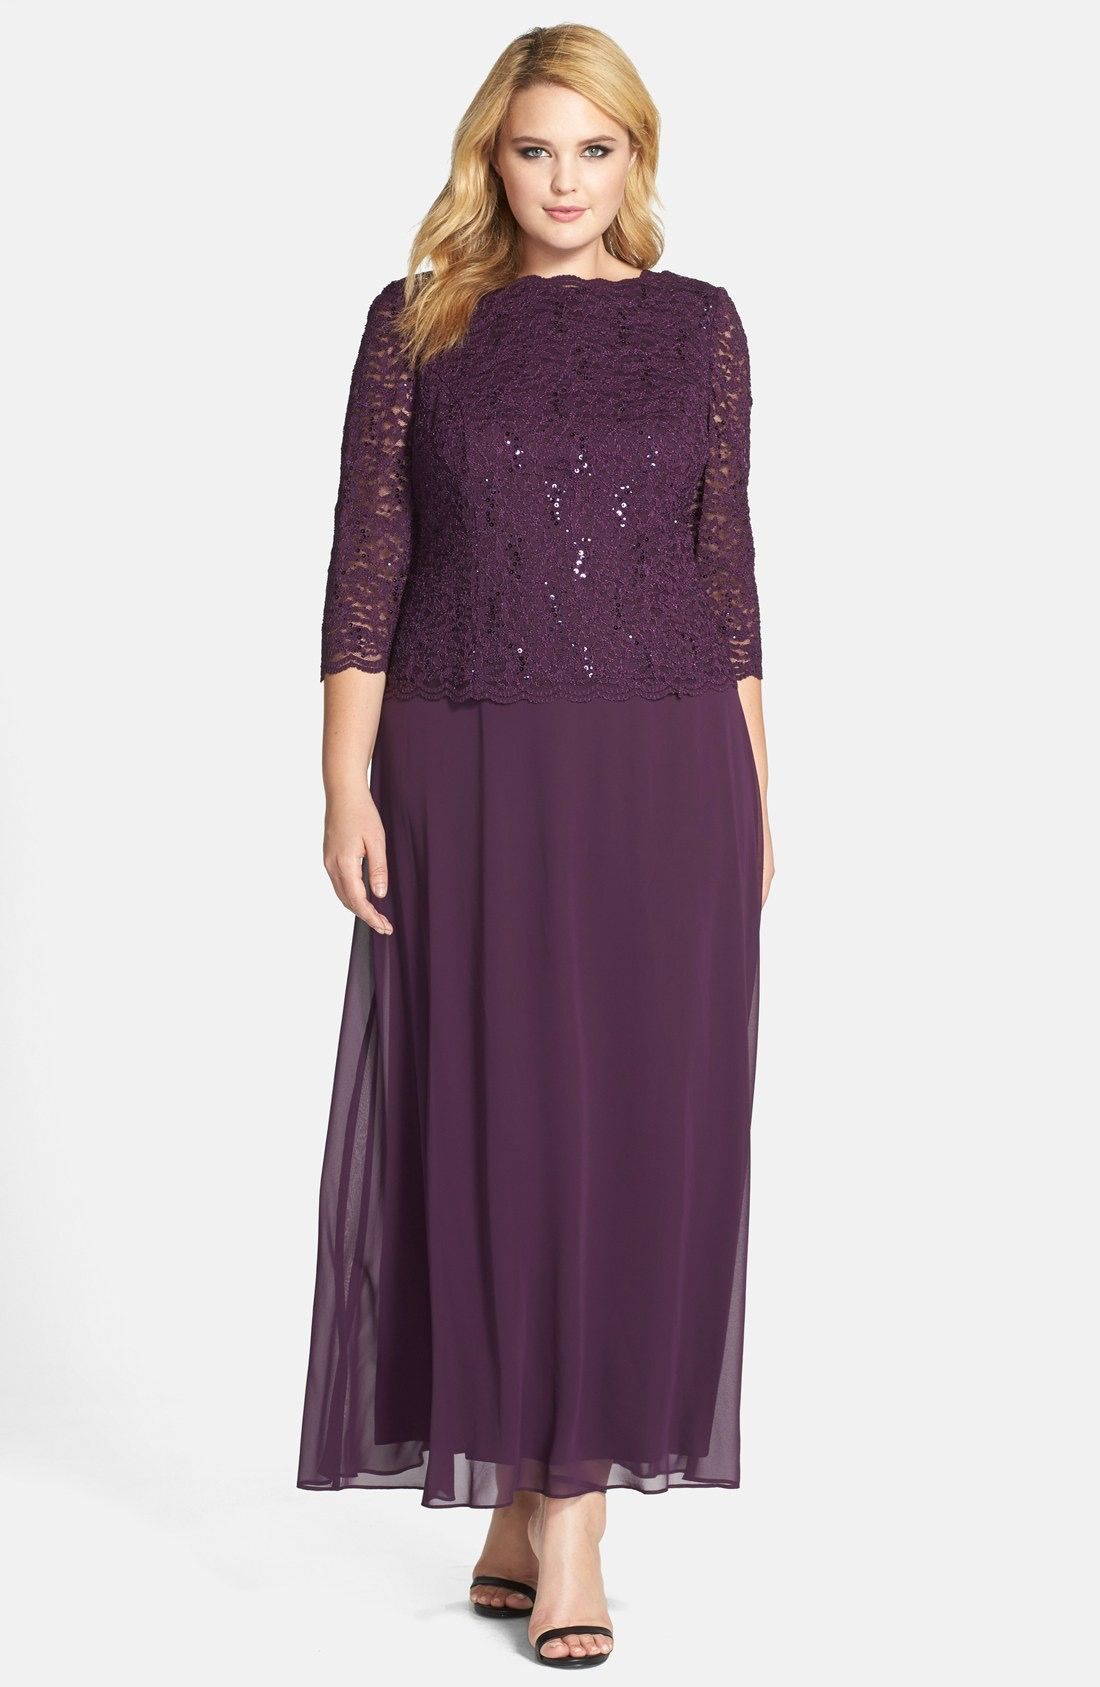 Alex Evenings Embellished Lace | Mother of the groom dresses | Pinterest